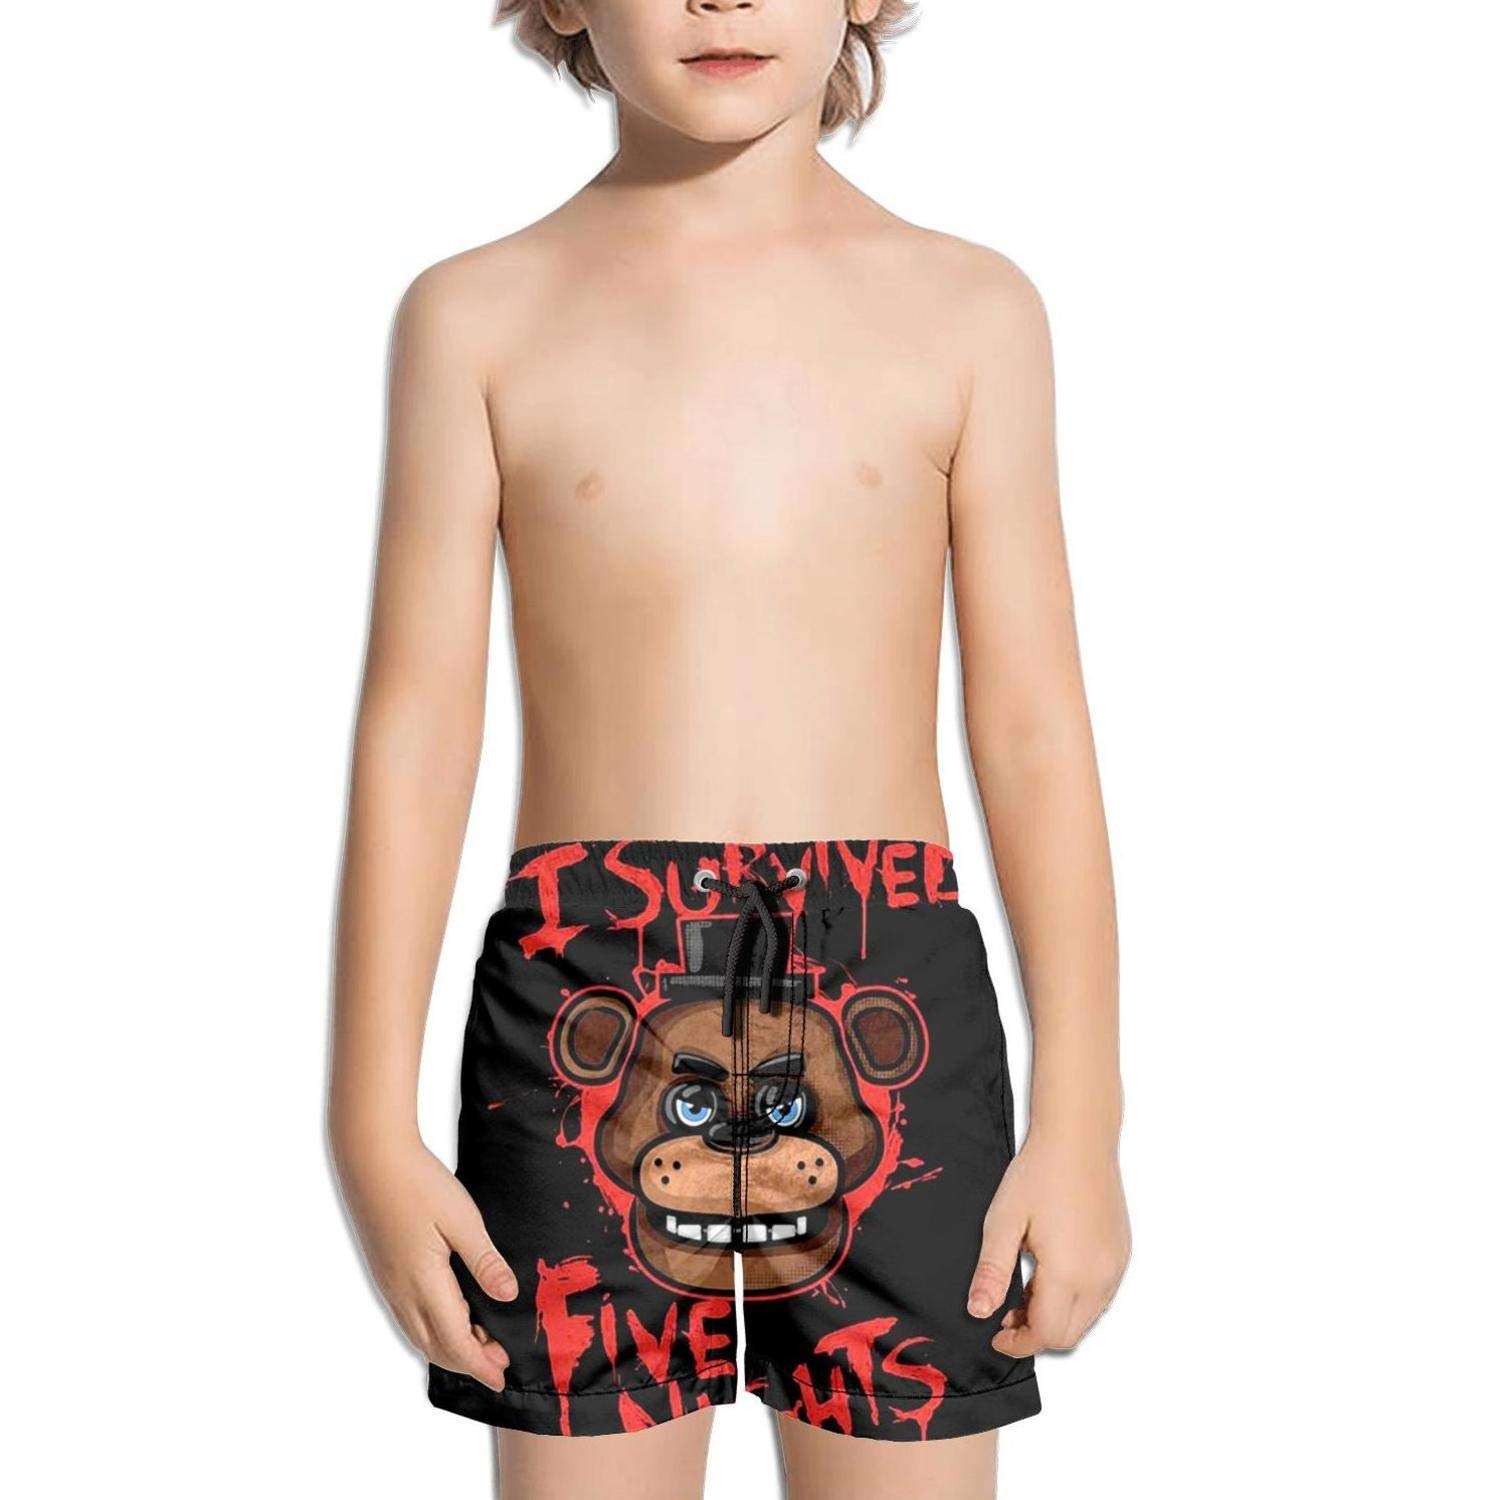 Kids Vintage Adjustable Quick Dry Swimming Trunks Shorts